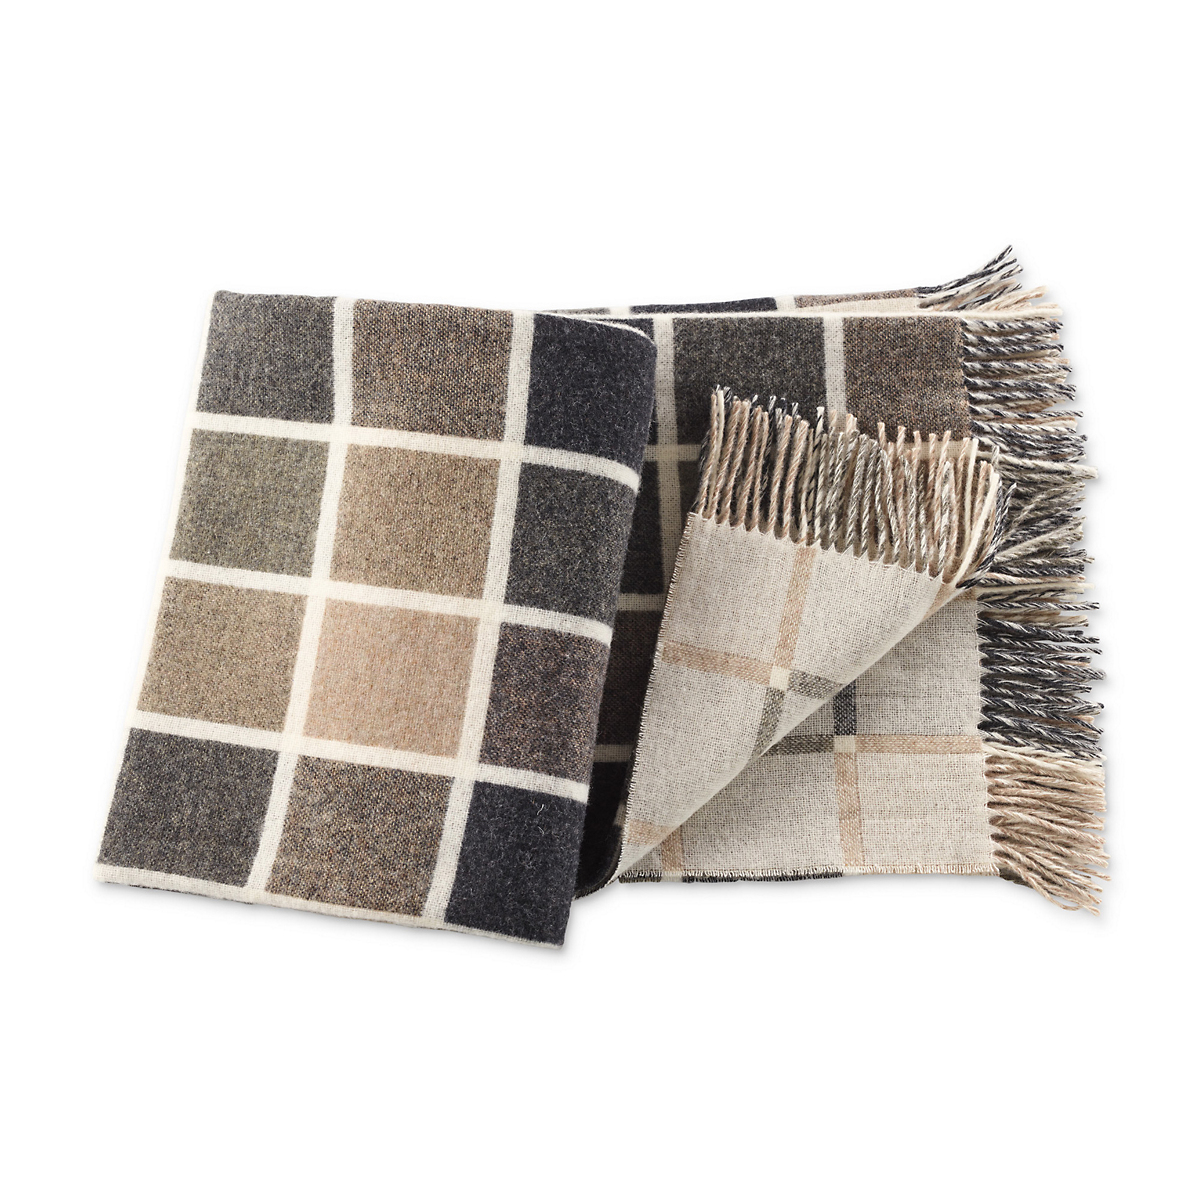 Windowpane Wool Throw, Neutral